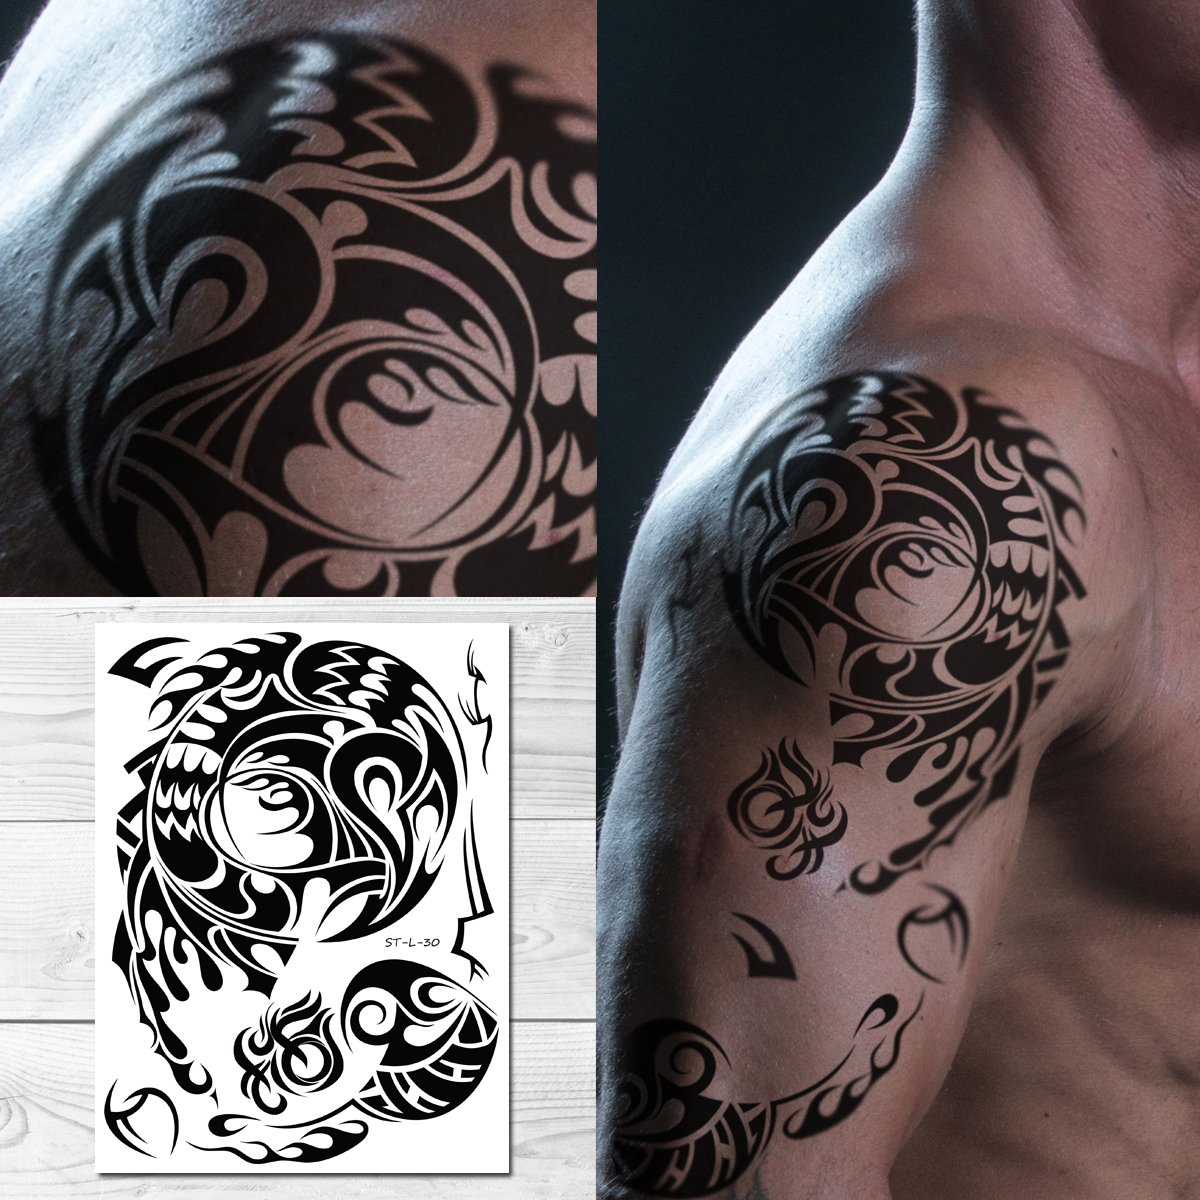 Amazon.com : Supperb Tribal Temporary Tattoos - Male shoulder Tribal ...